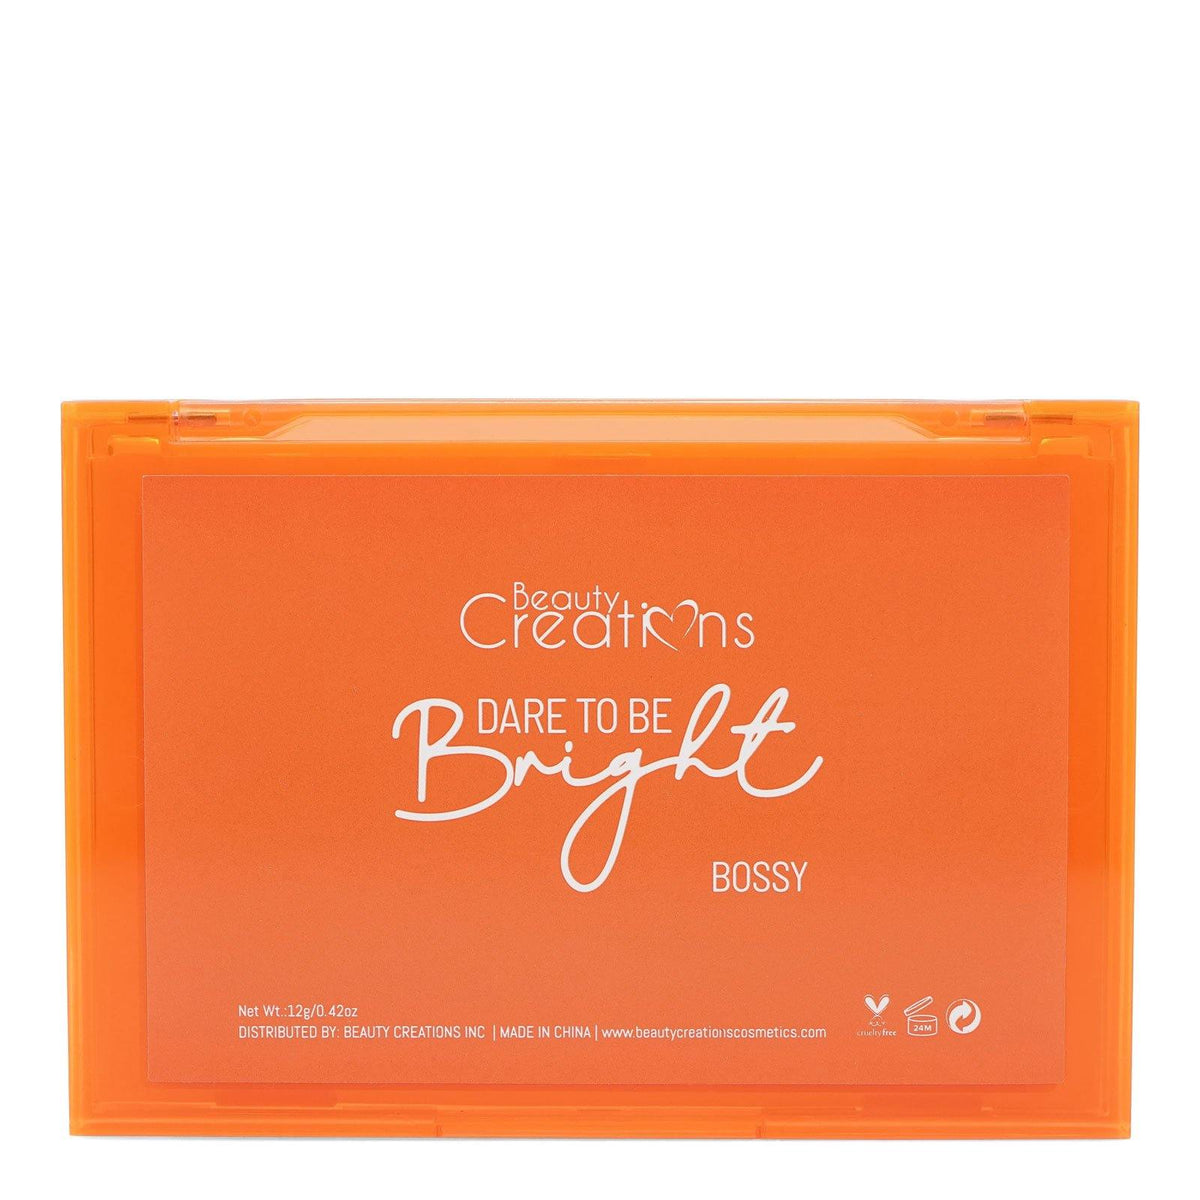 Beauty Creations Dare To Be Bright Eyeshadow Palette, E12NB-B, Bossy (12/cs)